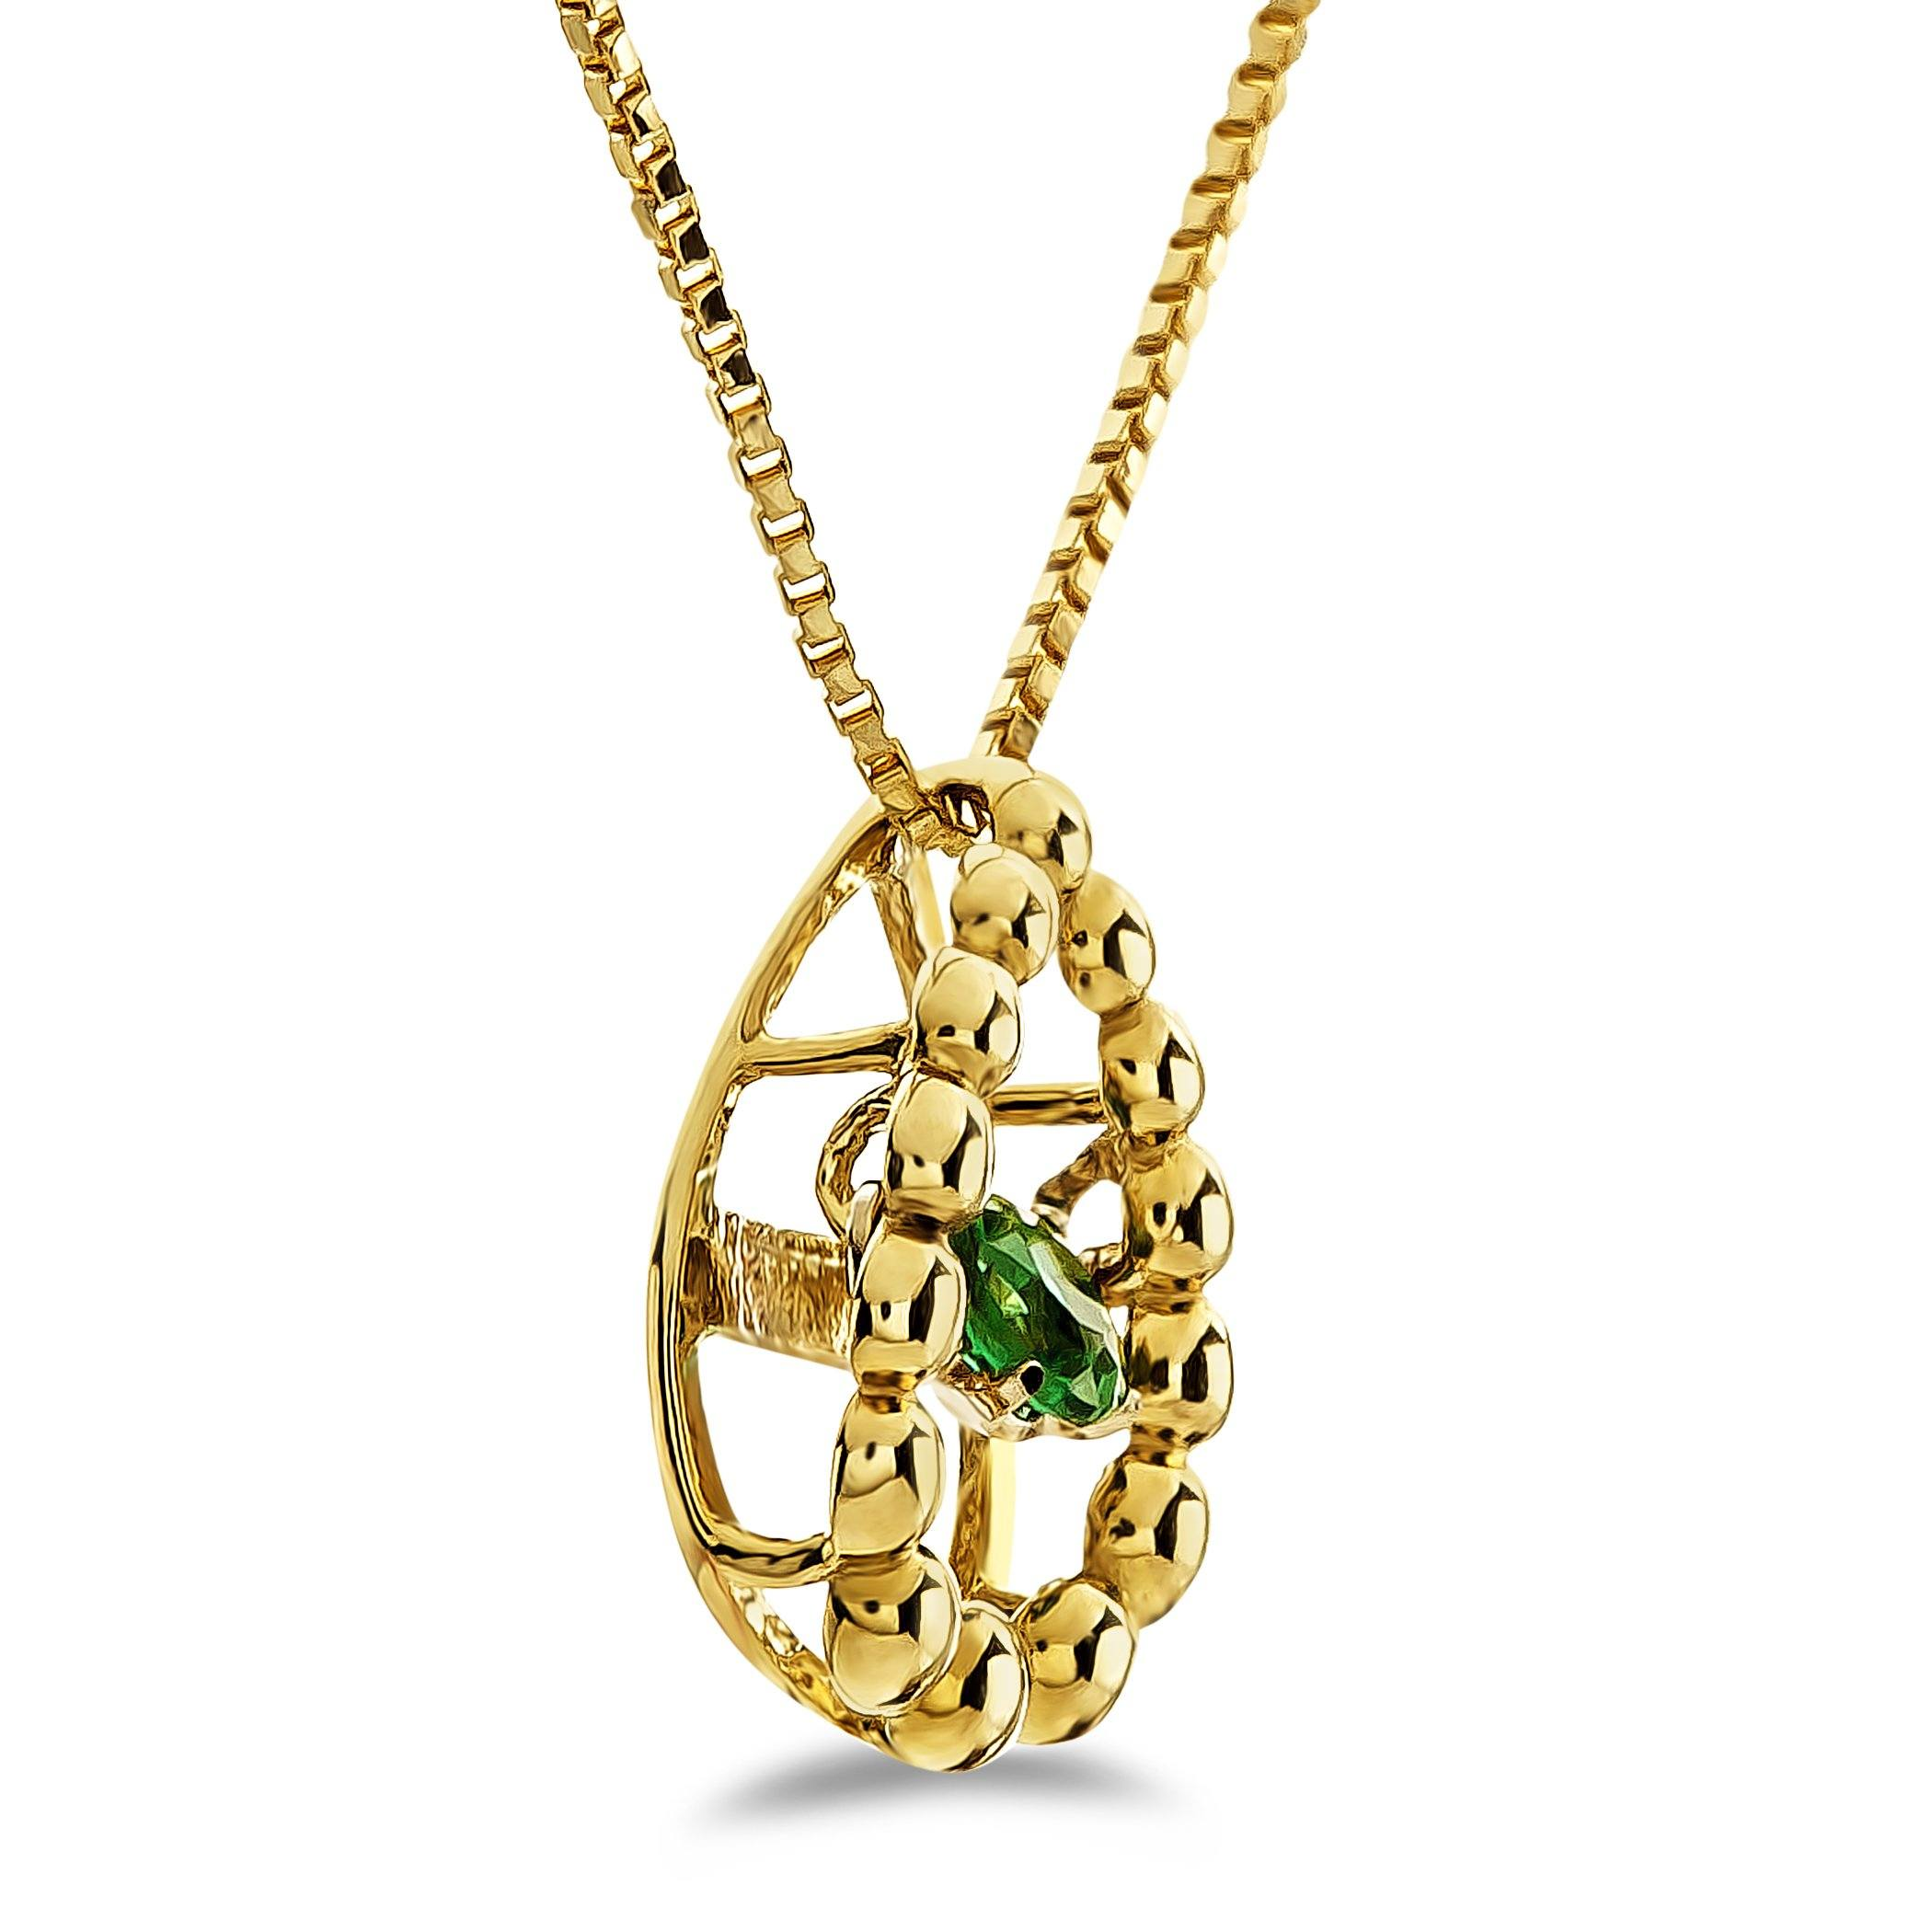 pendant stone gold necklaces yellow emerald shape in oval necklace womens image